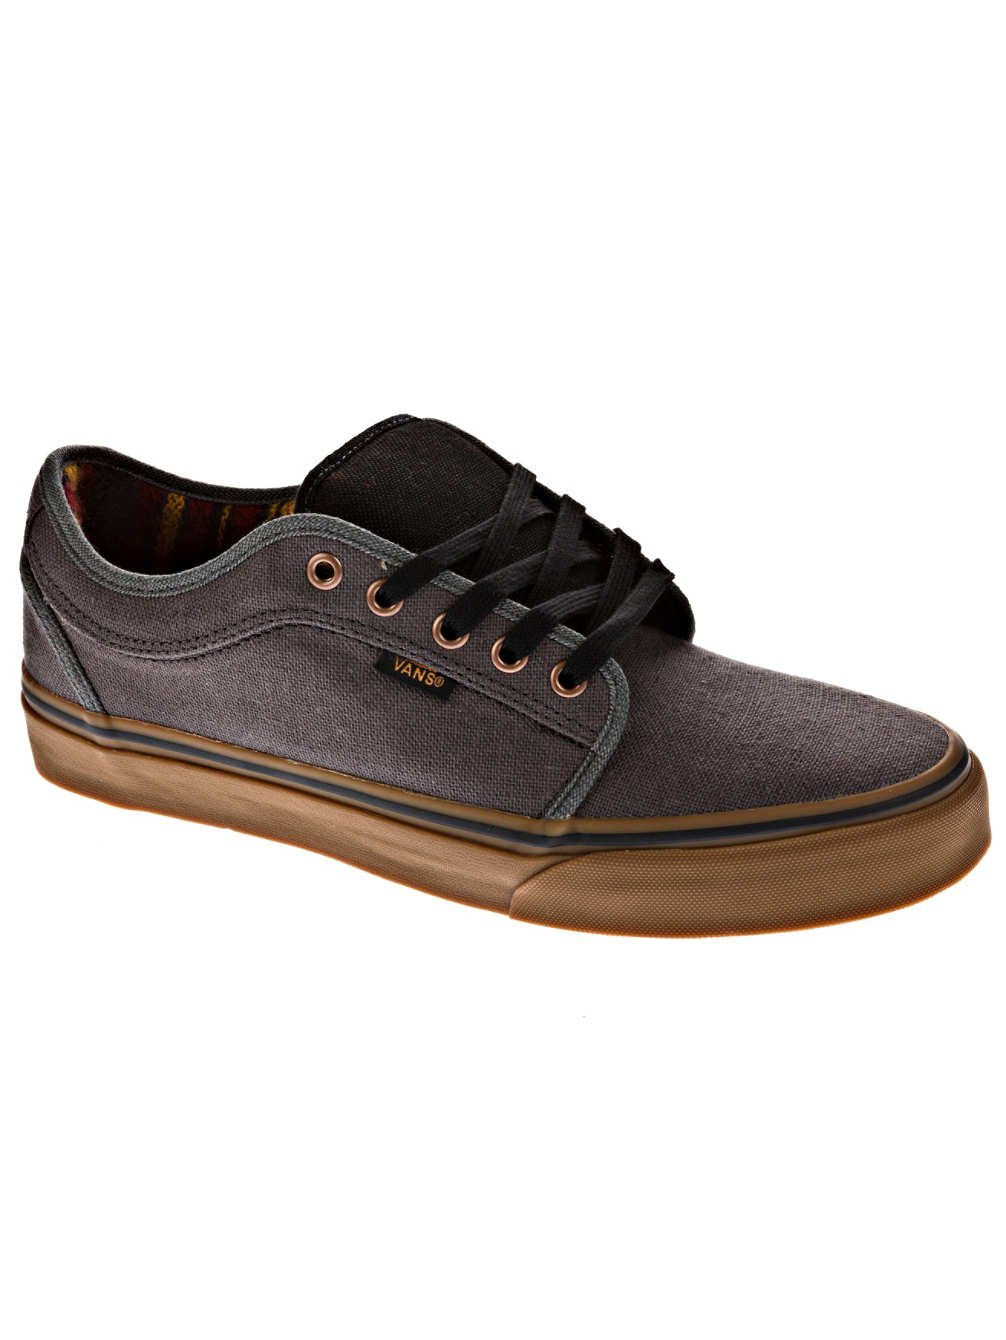 Galleon - VANS Chukka Low (Hemp) Dark Grey Gum US Men s Size 8 772af90f5